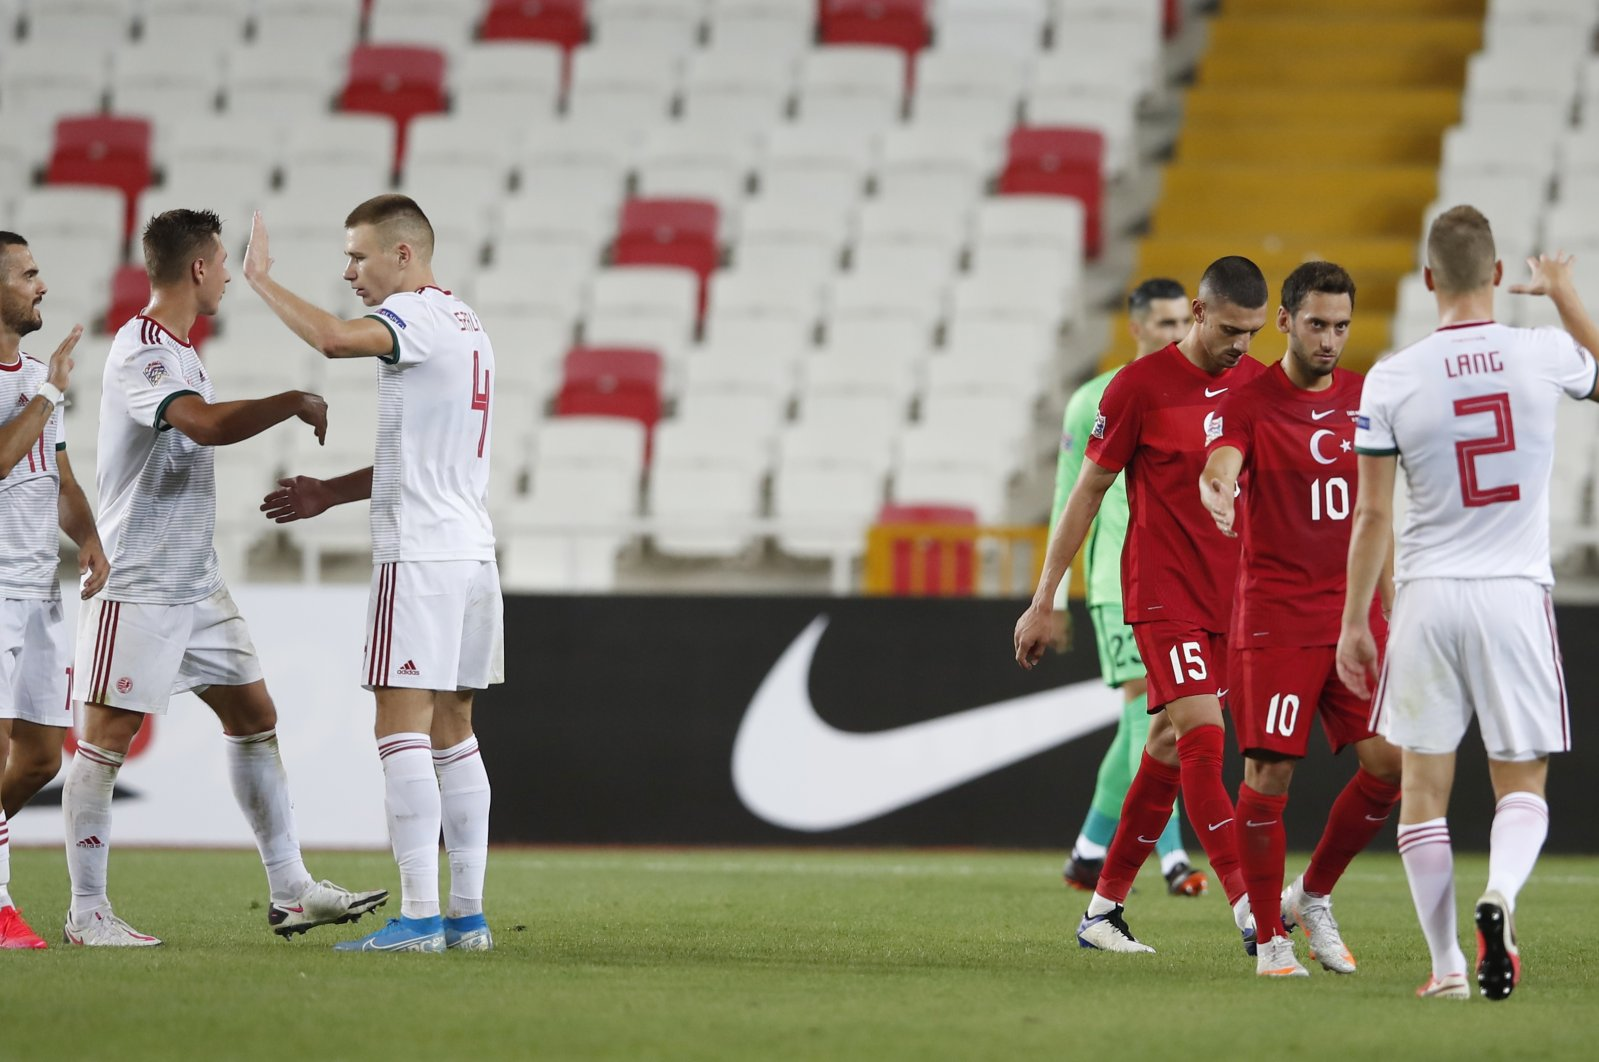 Hungary players celebrate after their win against Turkey in the UEFA Nations League match at the Yeni Sivas 4 Eylül Stadium, Sivas, central Turkey. Sept. 3, 2020. (Reuters Photo)